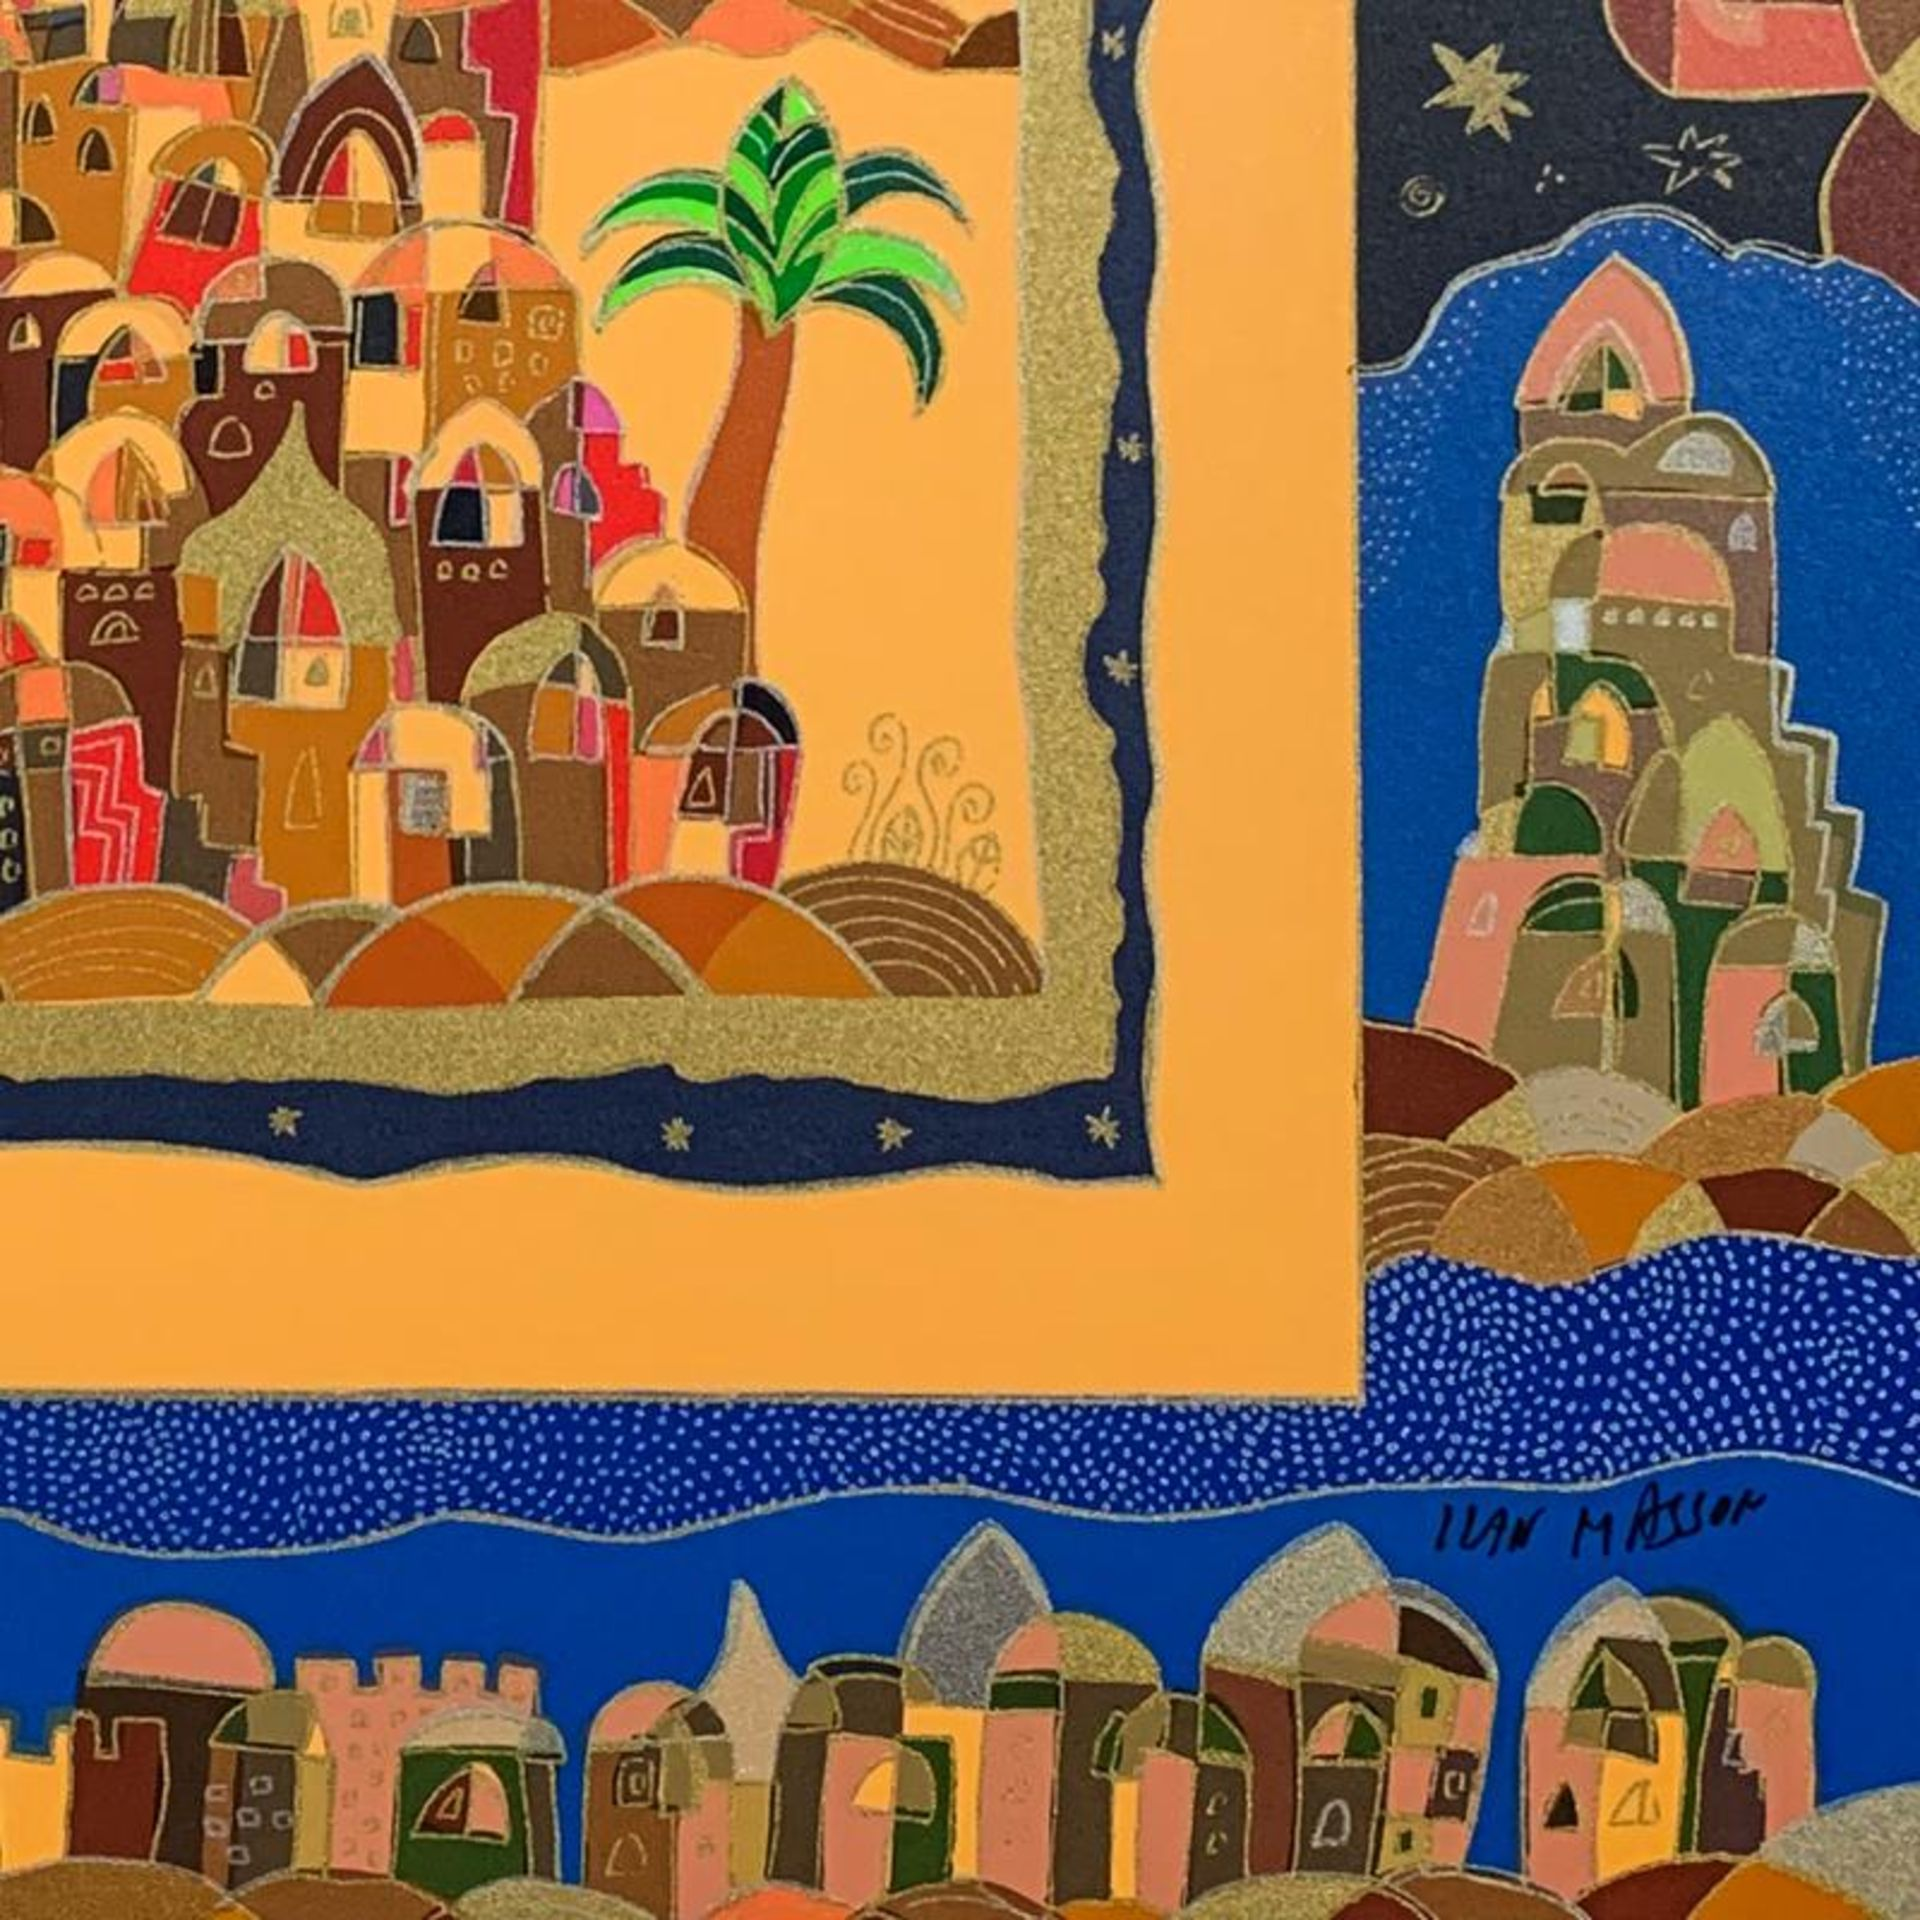 """Ilan Hasson, """"Oasis"""" Hand Signed Limited Edition Serigraph on Paper with Letter - Image 2 of 2"""